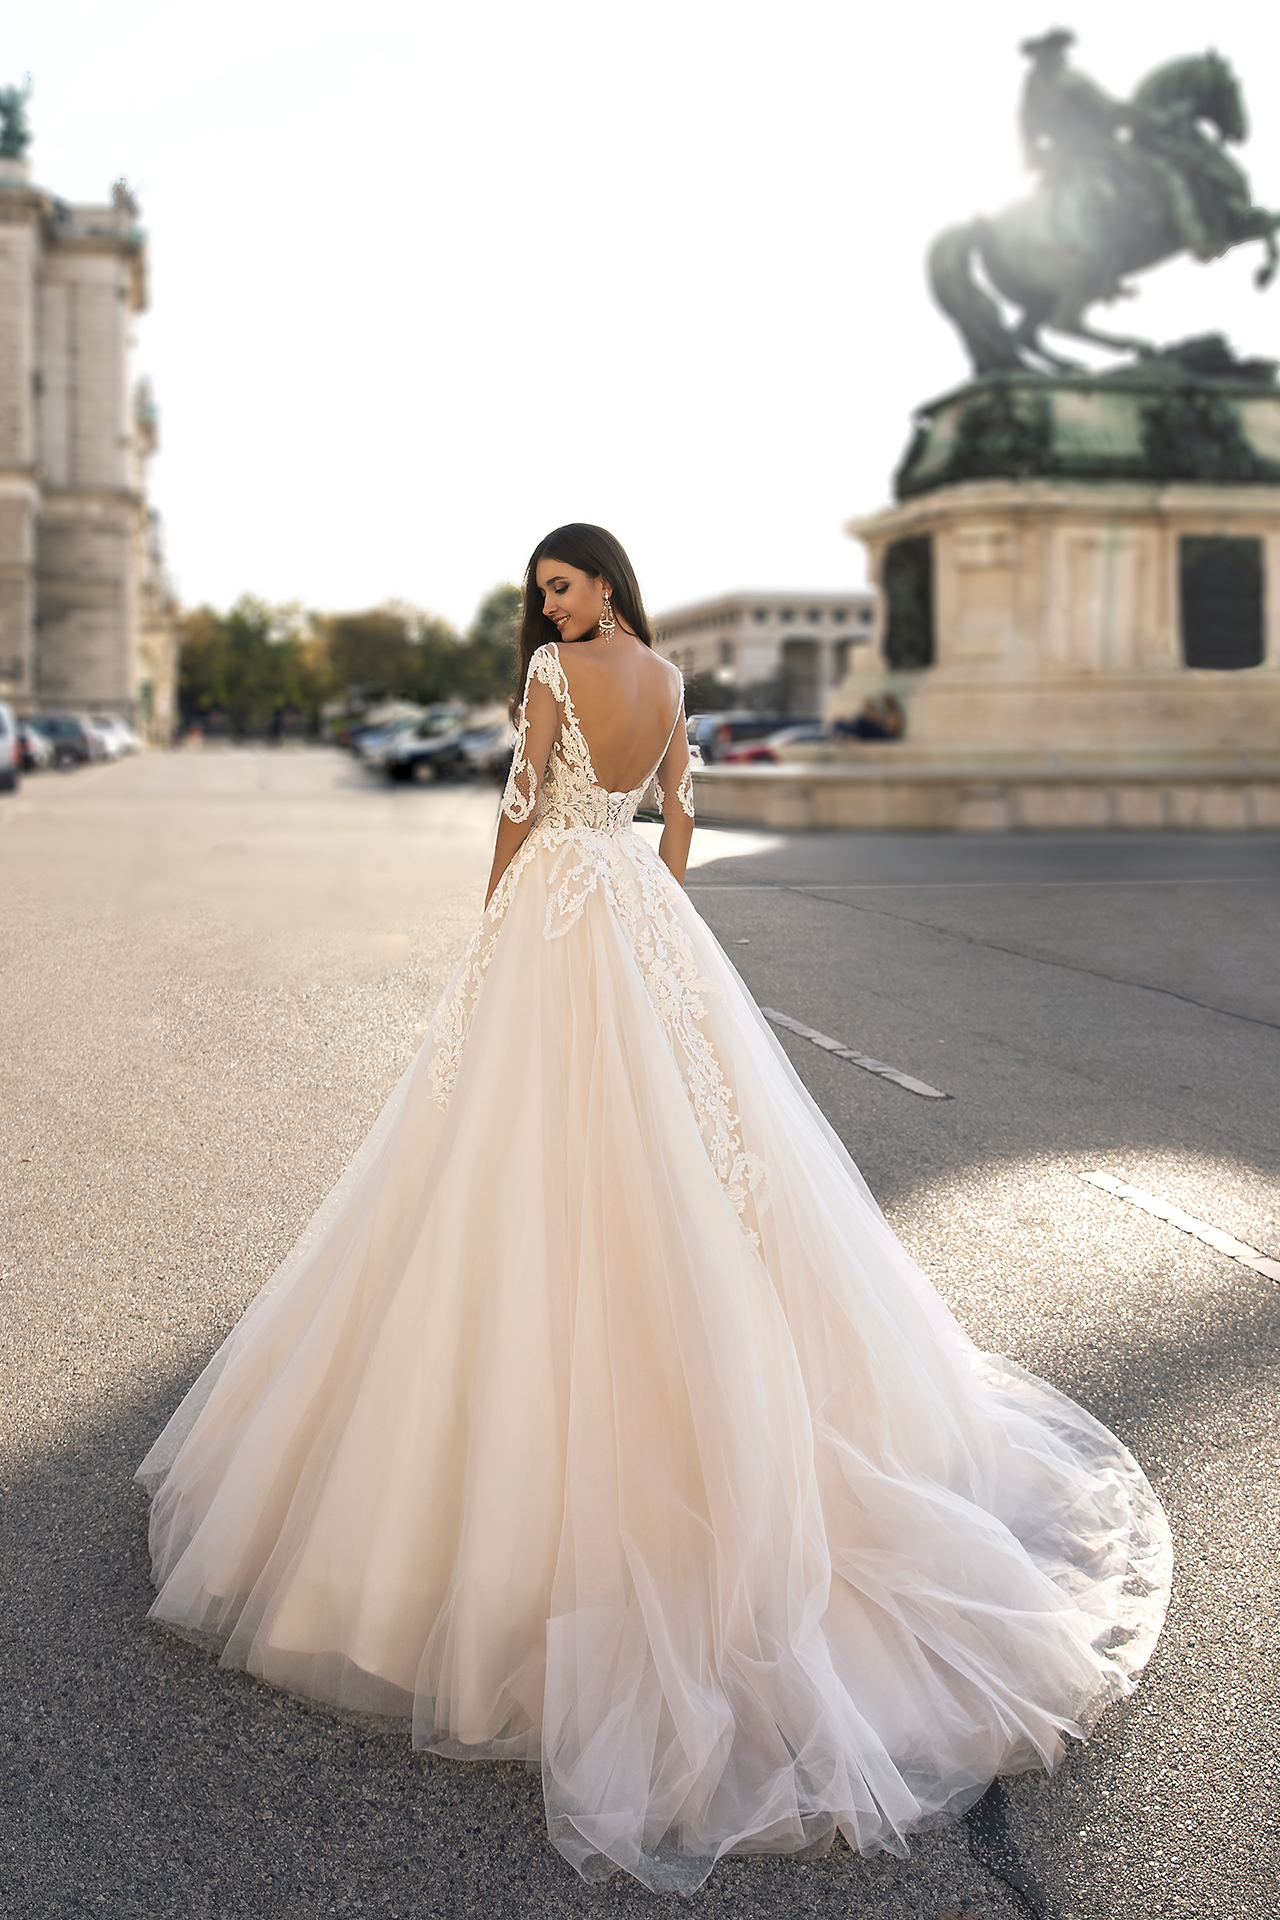 Wedding dress Salma Silhouette  A Line  Color  Cappuccino  Ivory  Neckline  Straight  Sleeves  3/4 Sleeves  Train  With train - foto 3